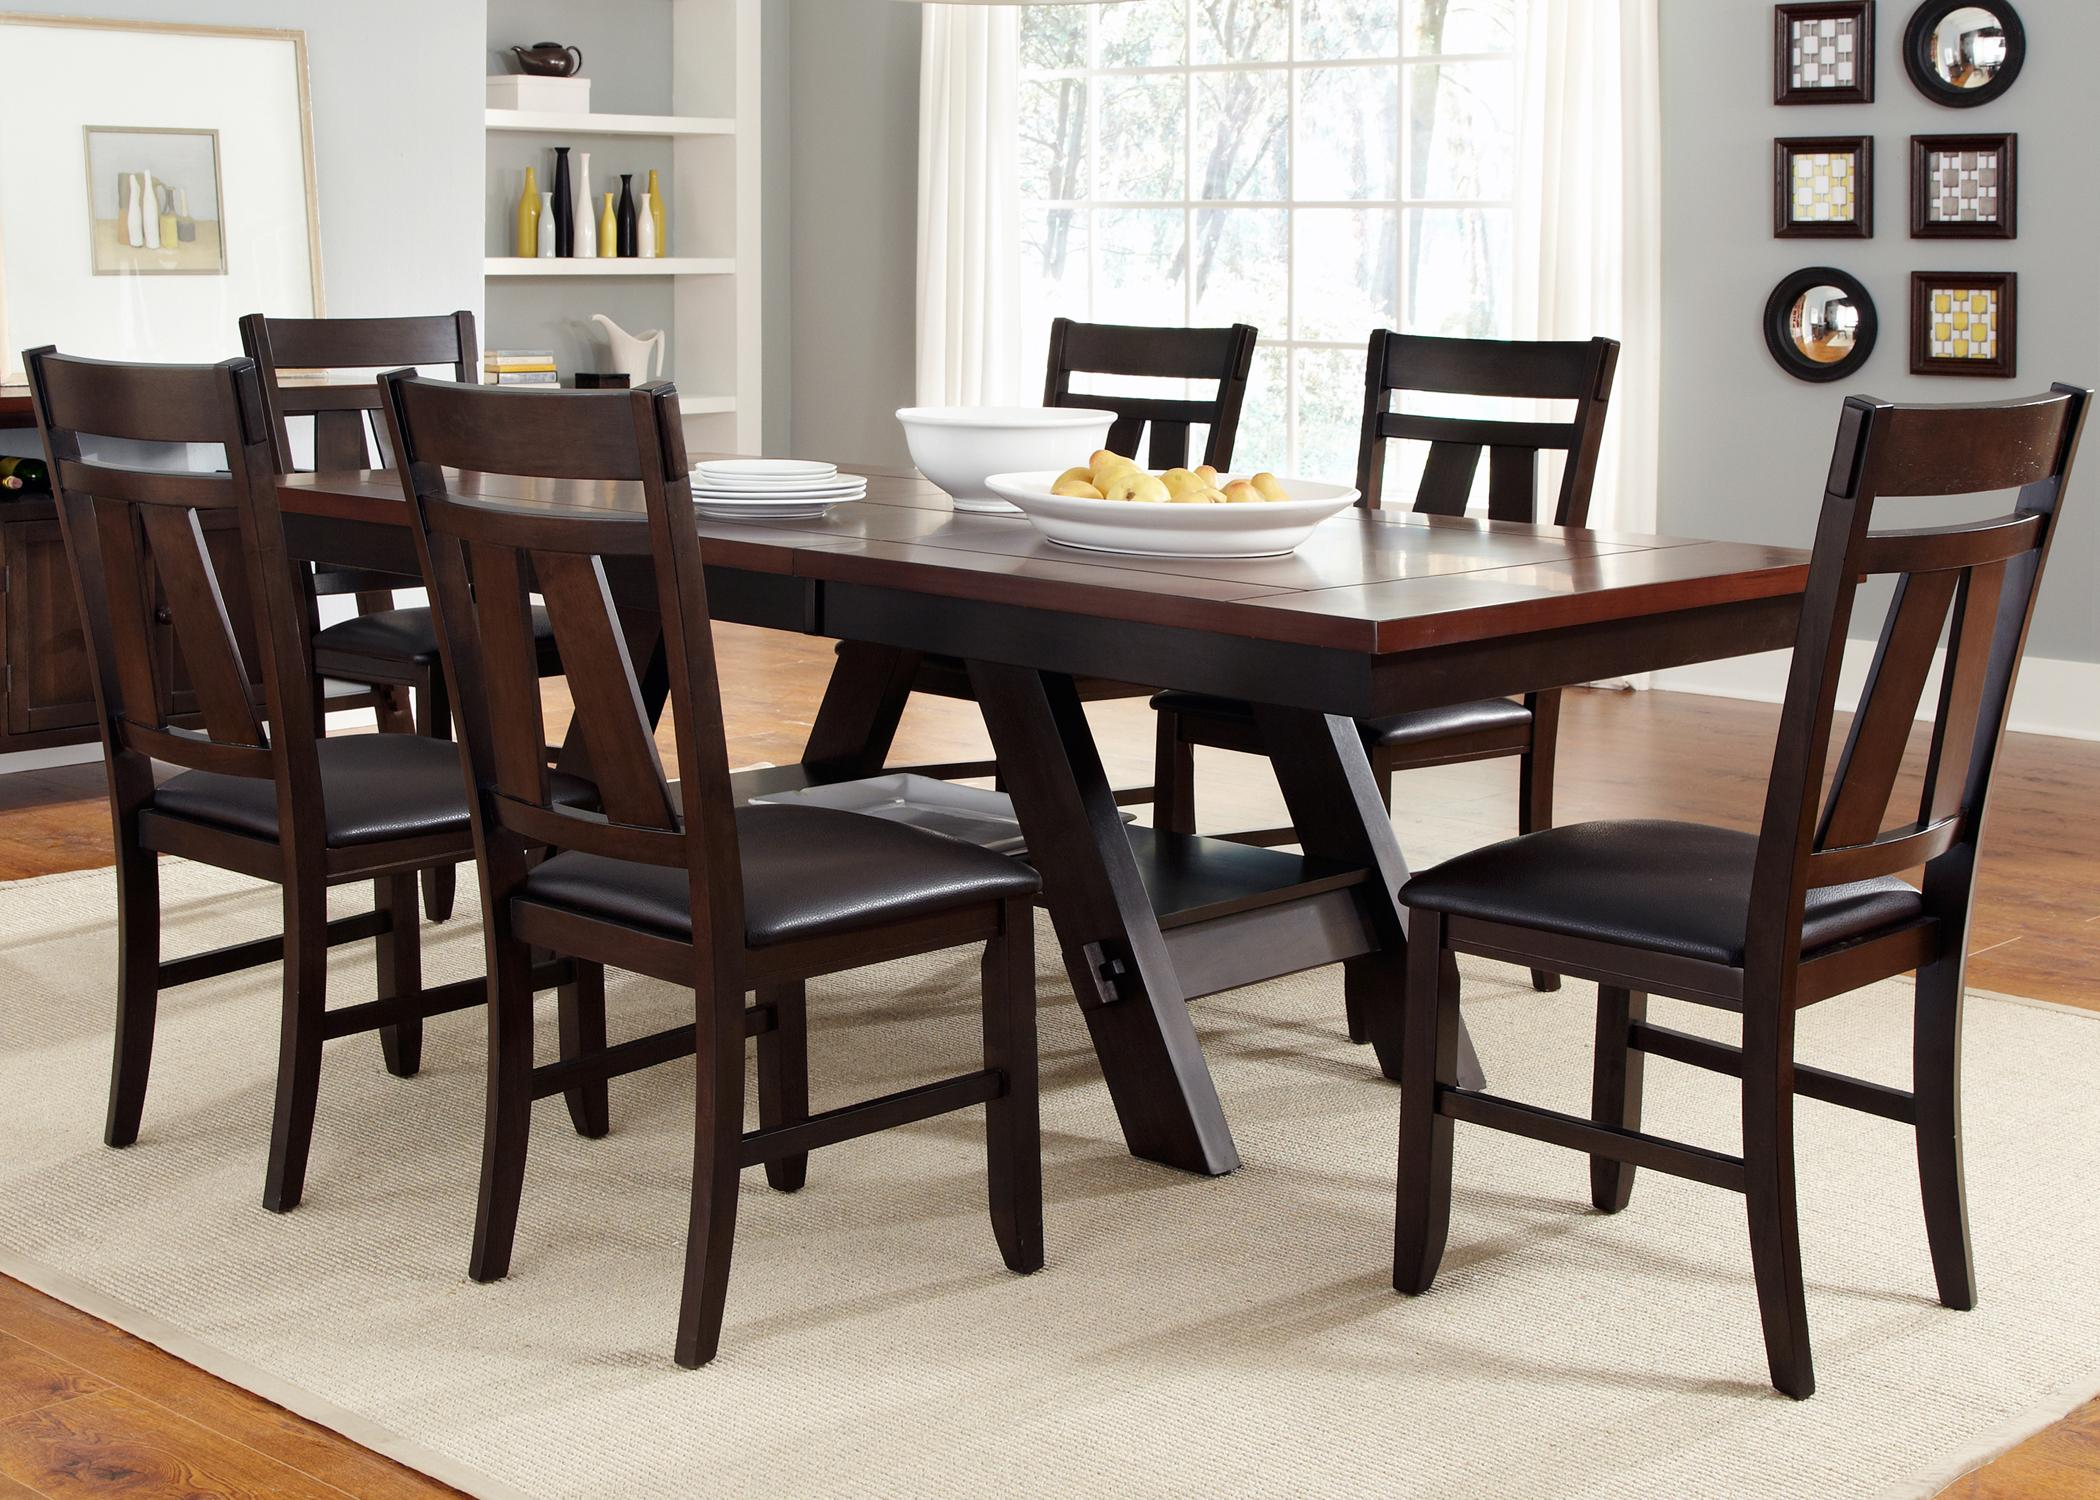 7 piece rectangular trestle table and splat back chairs set by 7 piece rectangular trestle table and splat back chairs set